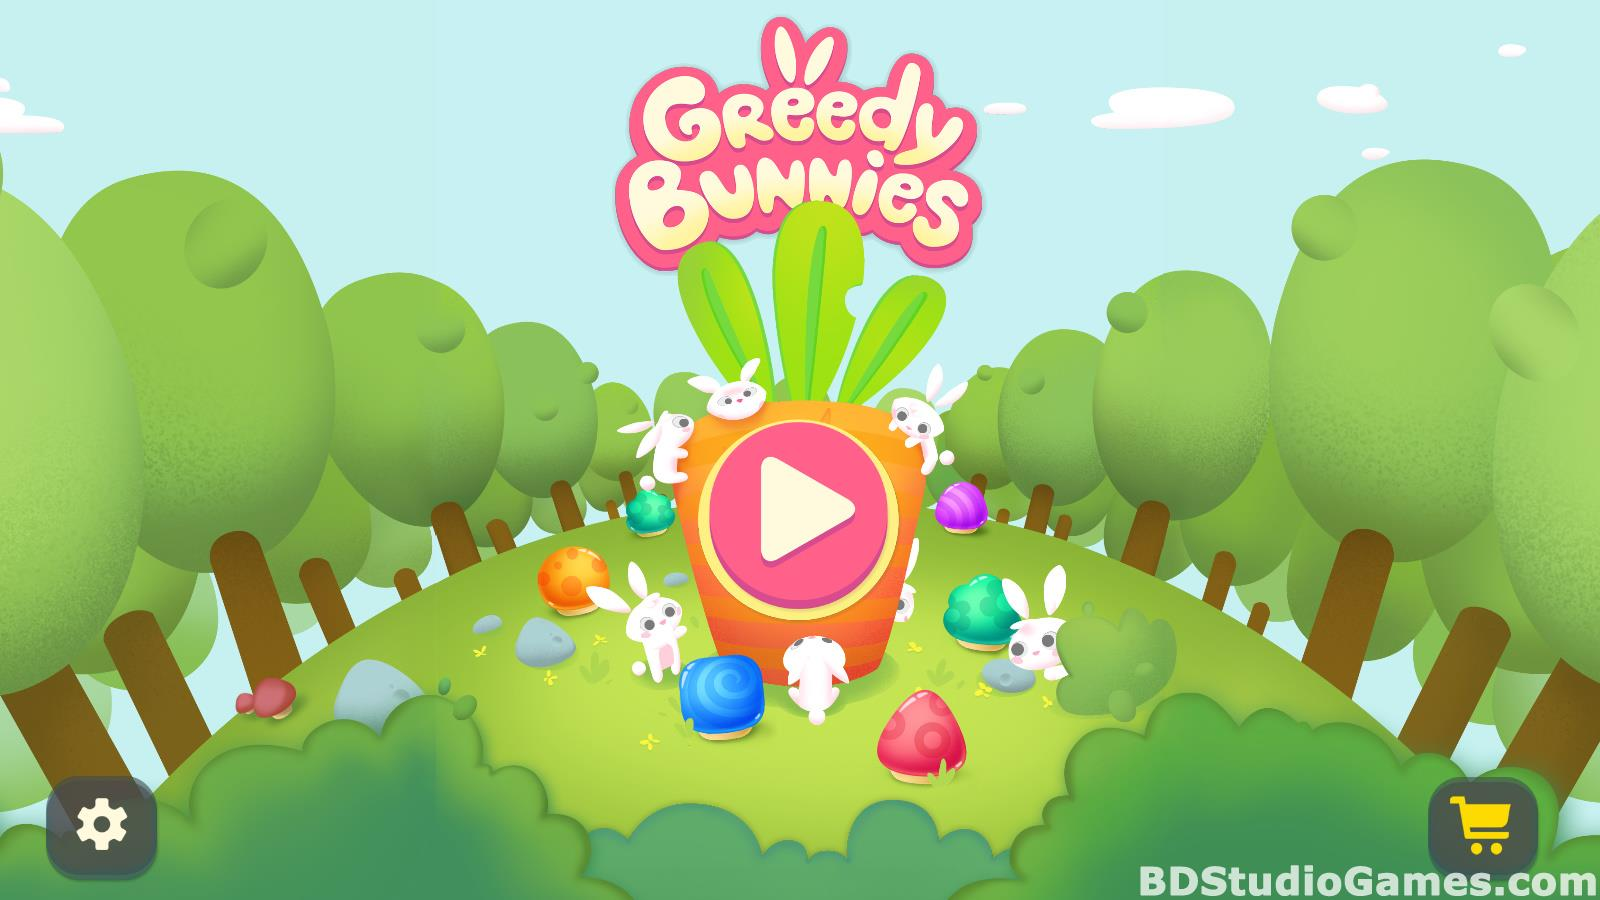 Greedy Bunnies Free Download Screenshots 01